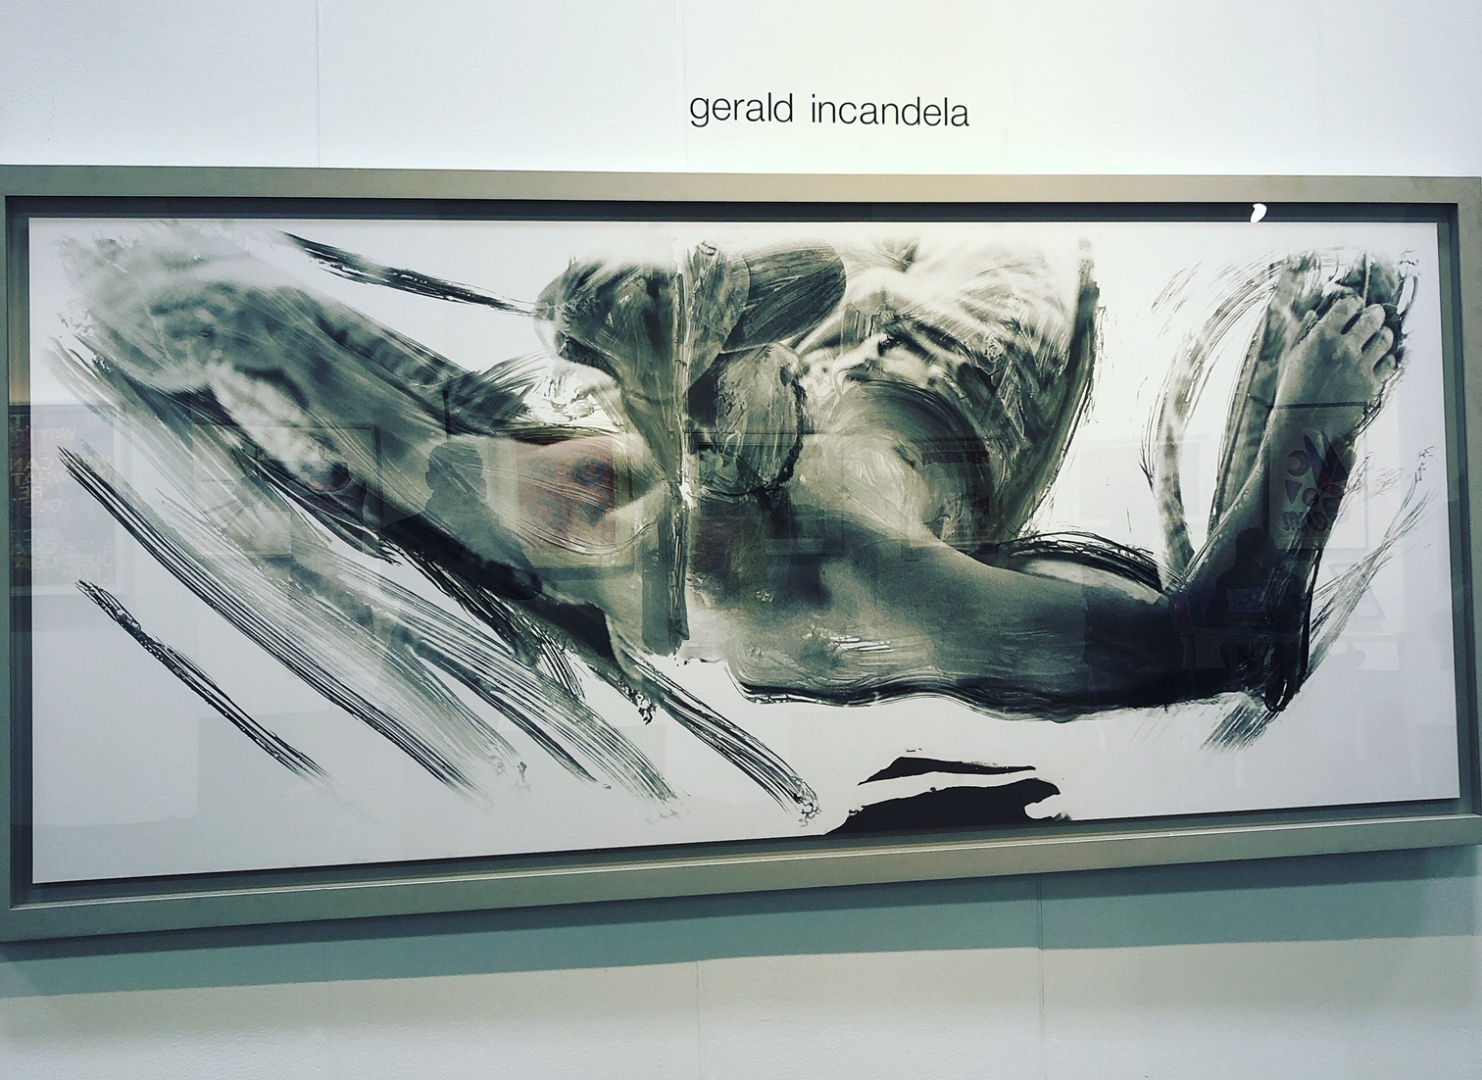 The Mix of Drawing and Photography in the Art of Gerald Incandela